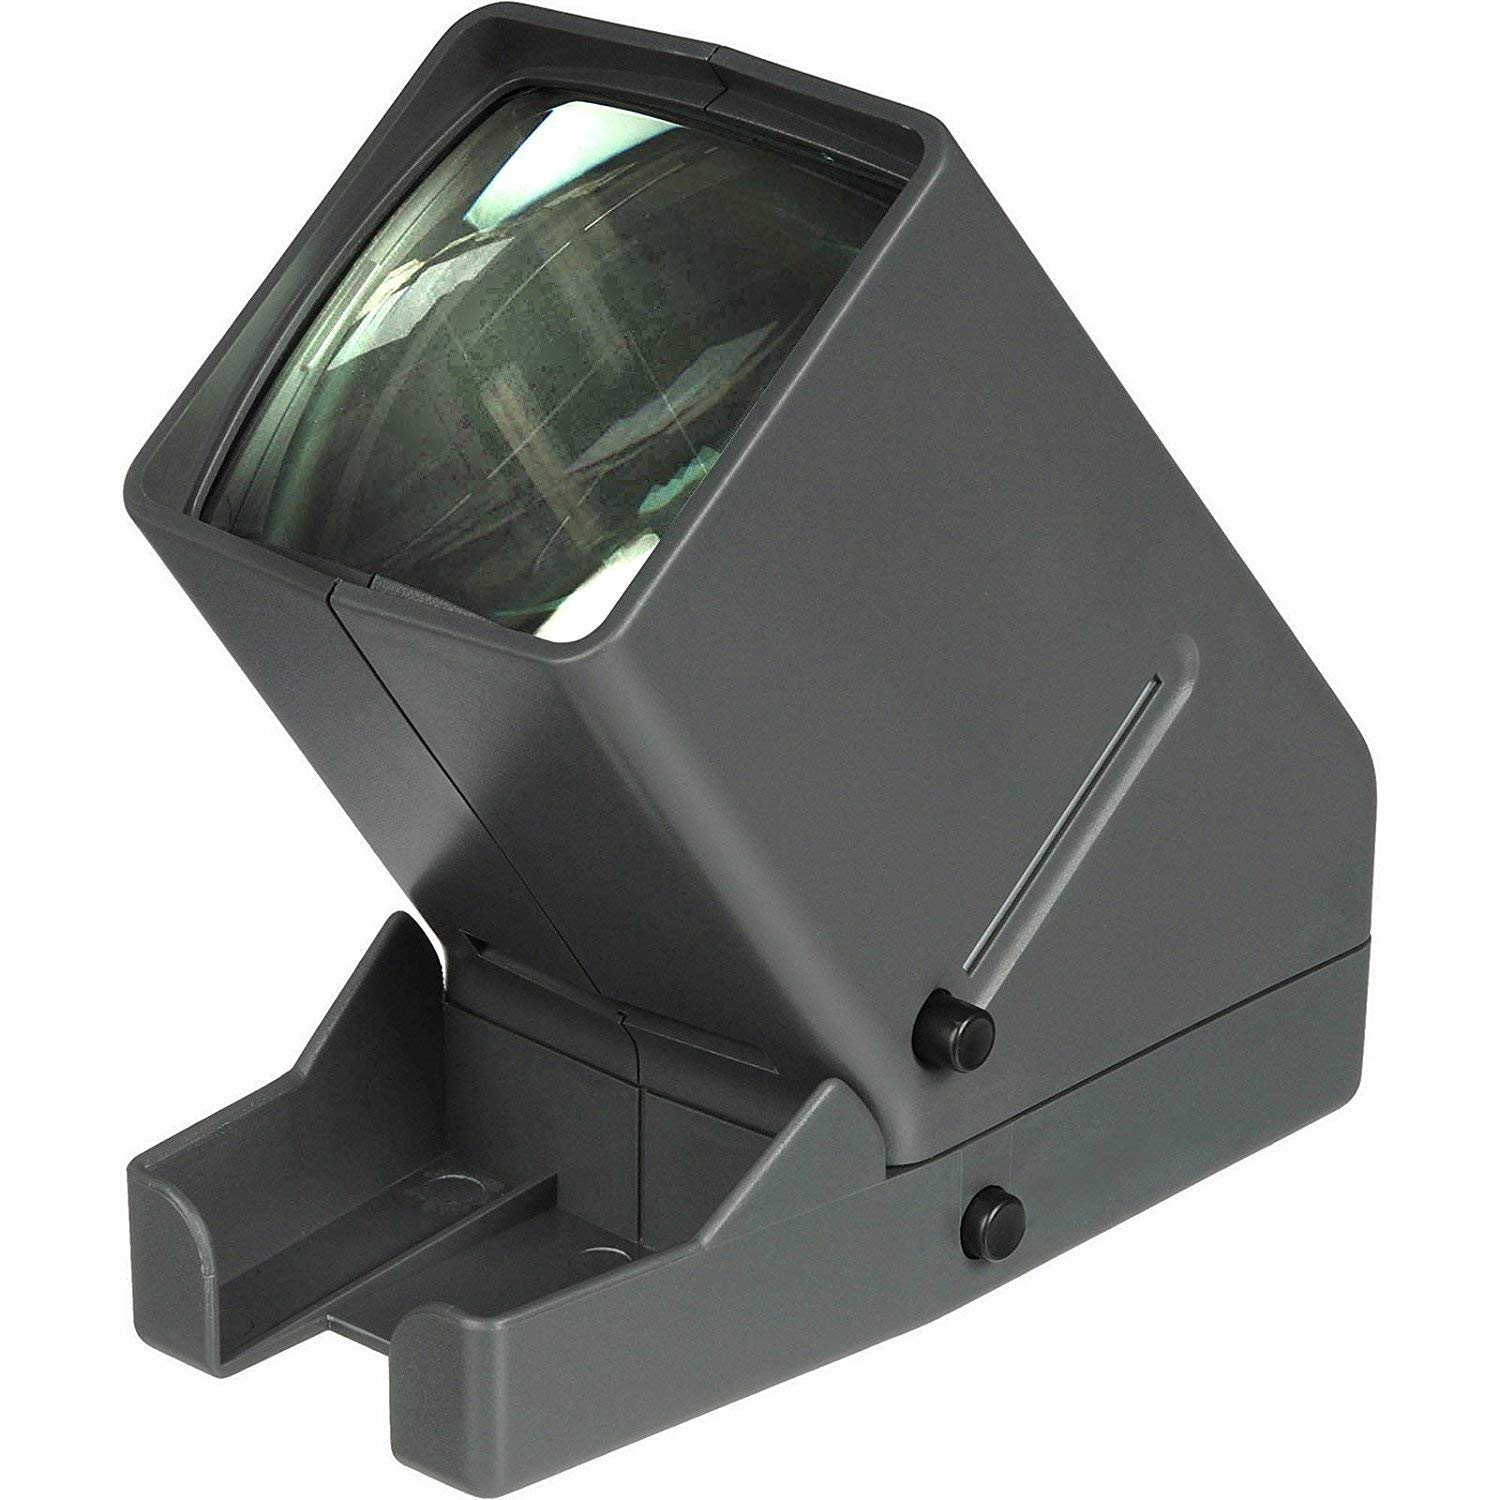 35mm Film and Slide Viewer, Desk Top Portable LED Negative and Slide Viewer, 3X Magnification, LED Lighted Viewing, for 35mm Slides & Film Negatives (Battery Not Included) by CozyKit